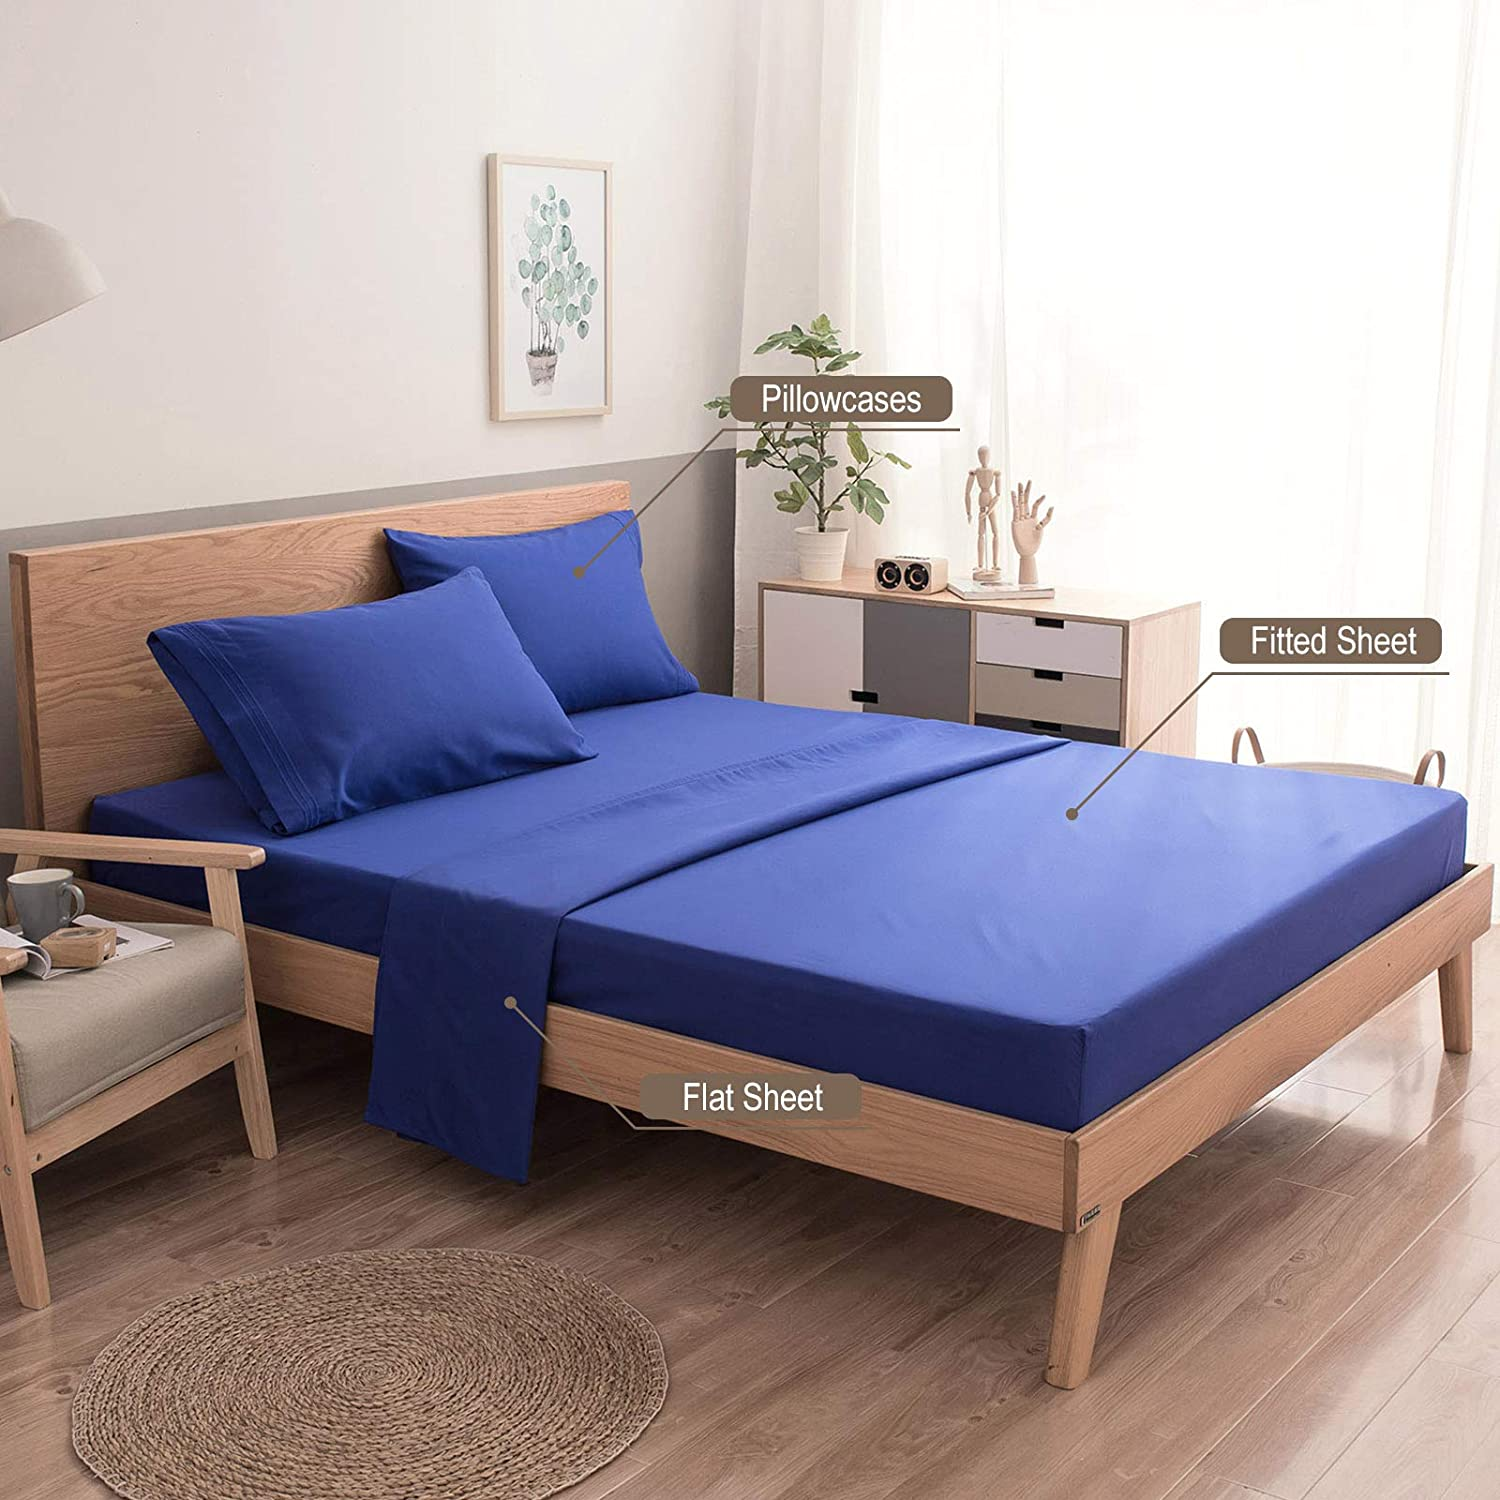 Amazon Promo Code 2020 for Twin XL Size Bed Sheet Set